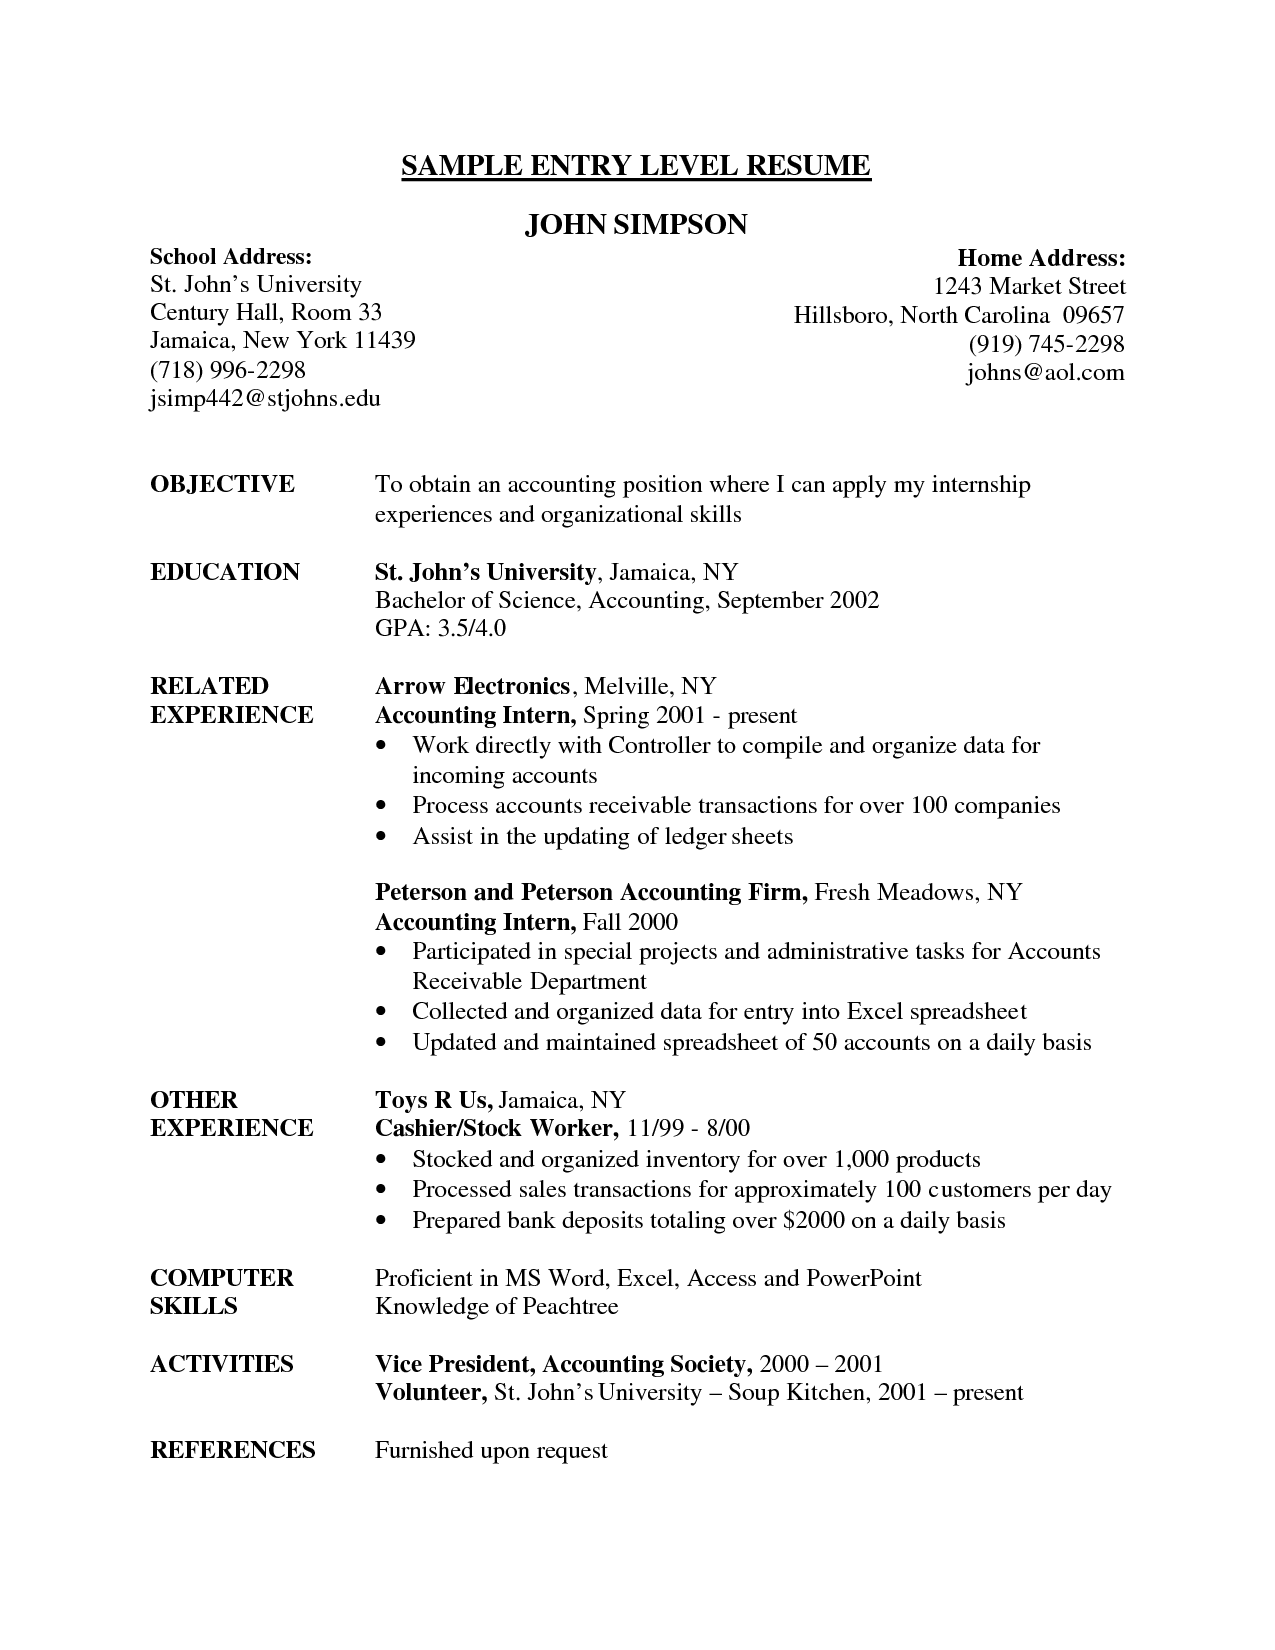 example of resume profile entry level httpwwwresumecareerinfo - How To Write Entry Level Resume